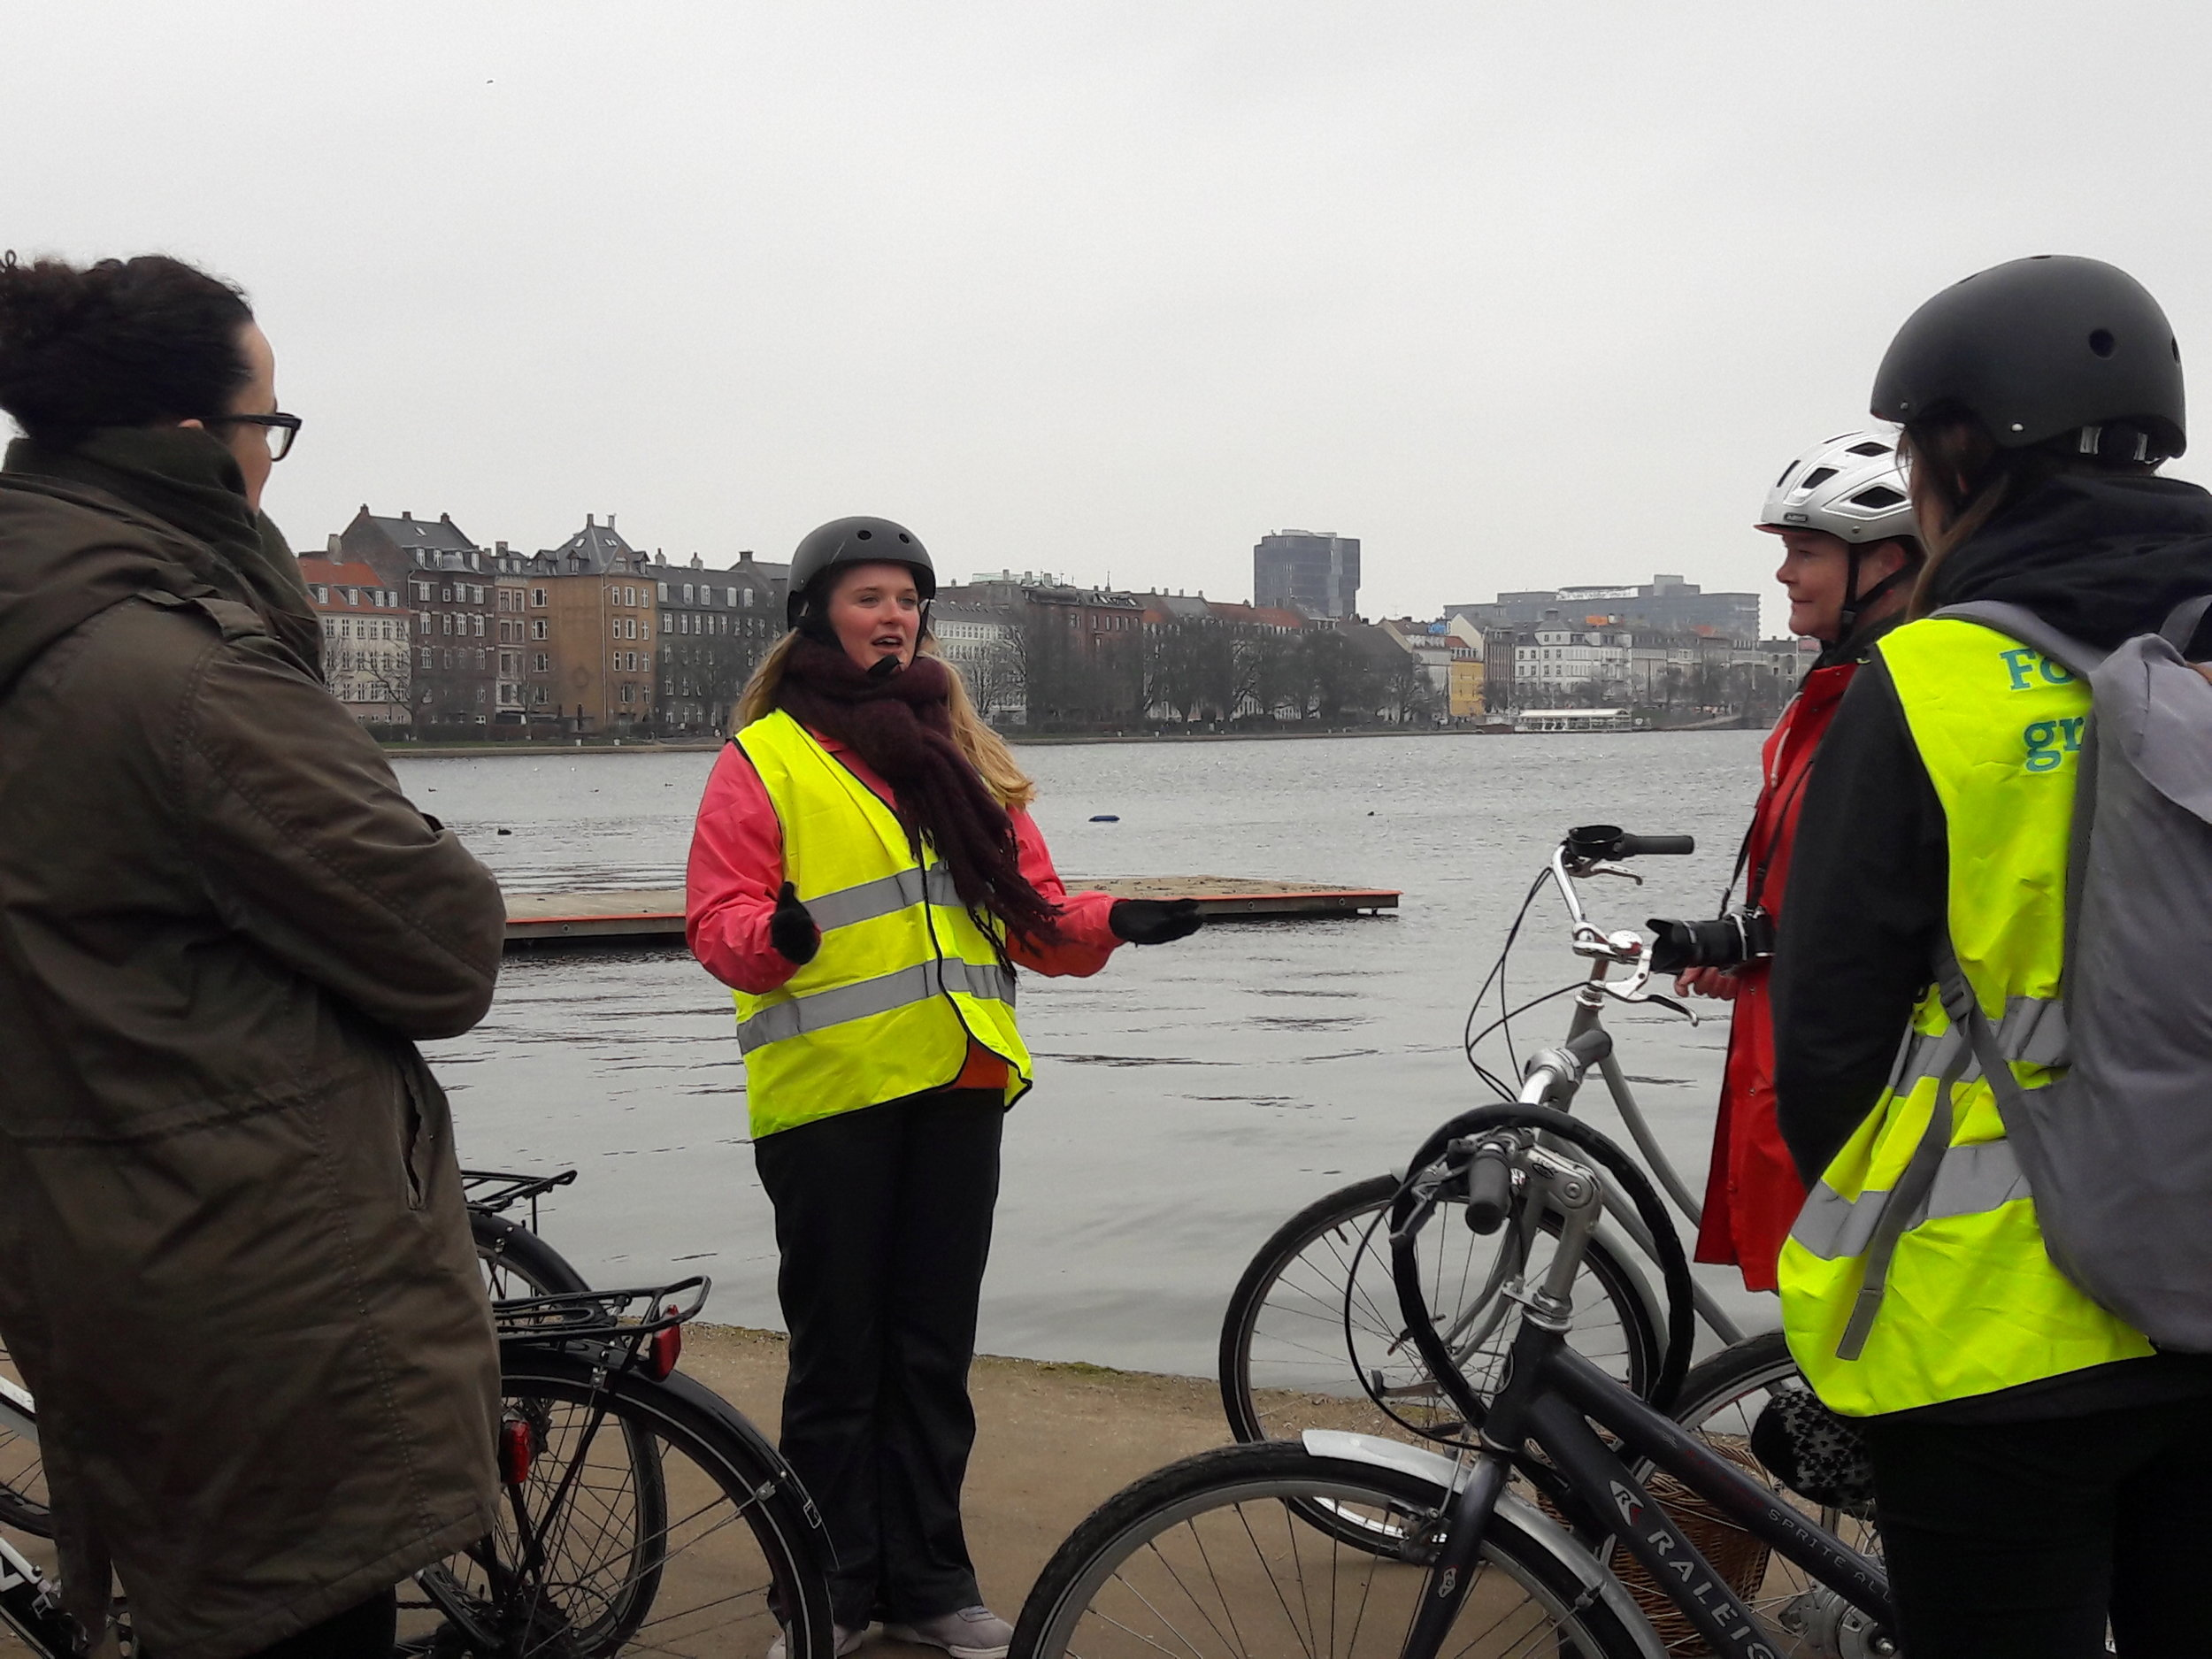 Green Bike Tours, Copenhagen https://www.greenbiketours.dk/